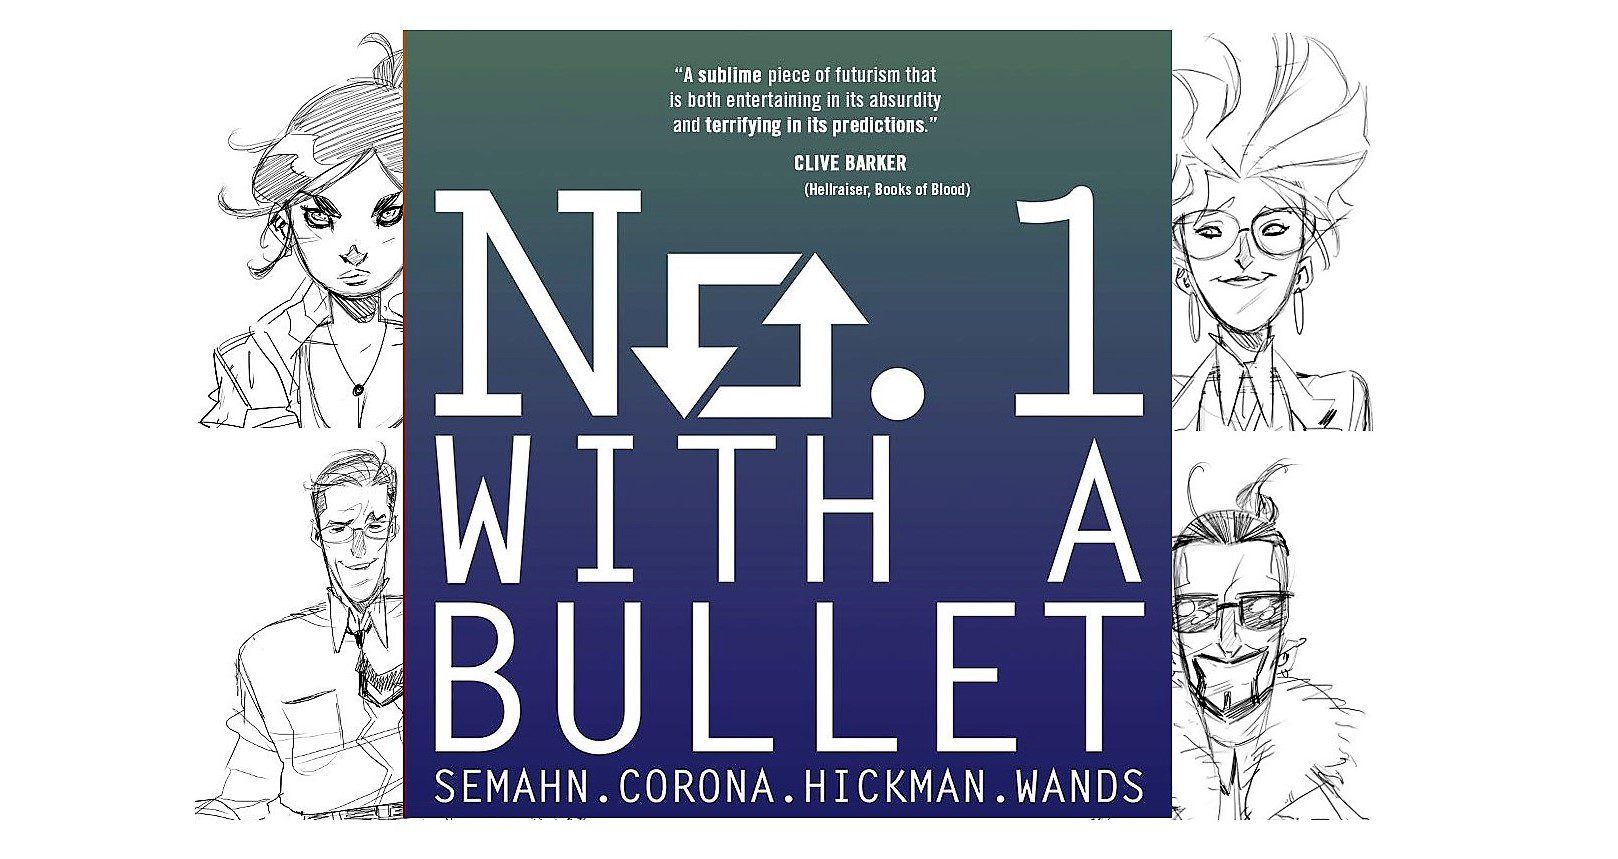 Jacob Semahn and Jorge Corona Talk No. 1 With a Bullet, Technology, and the Perils of Social Media